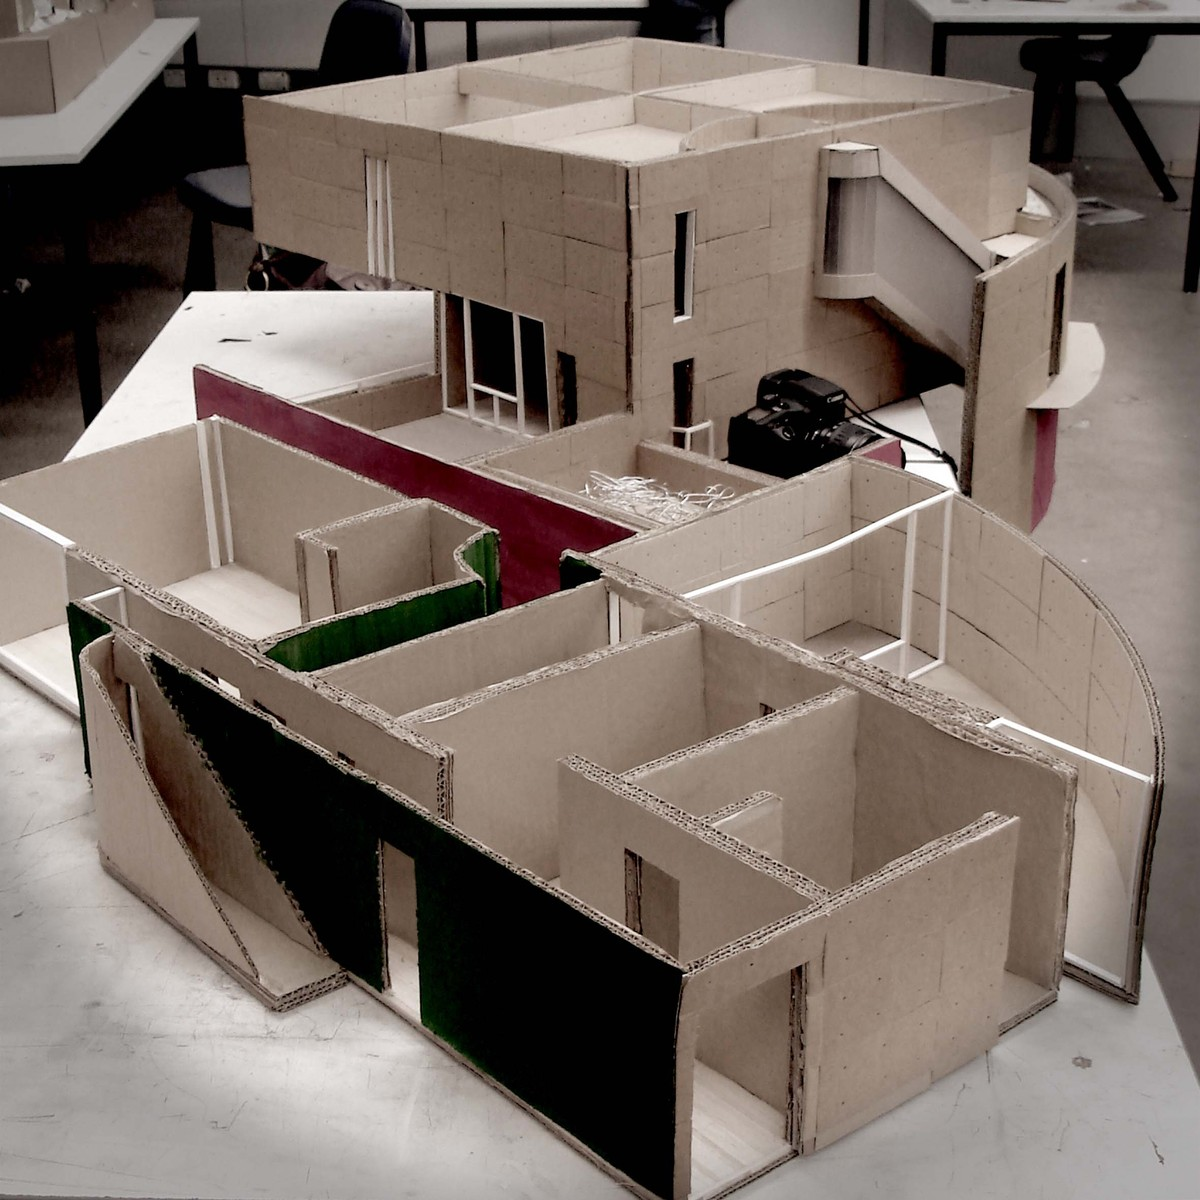 Cardboard house for school project